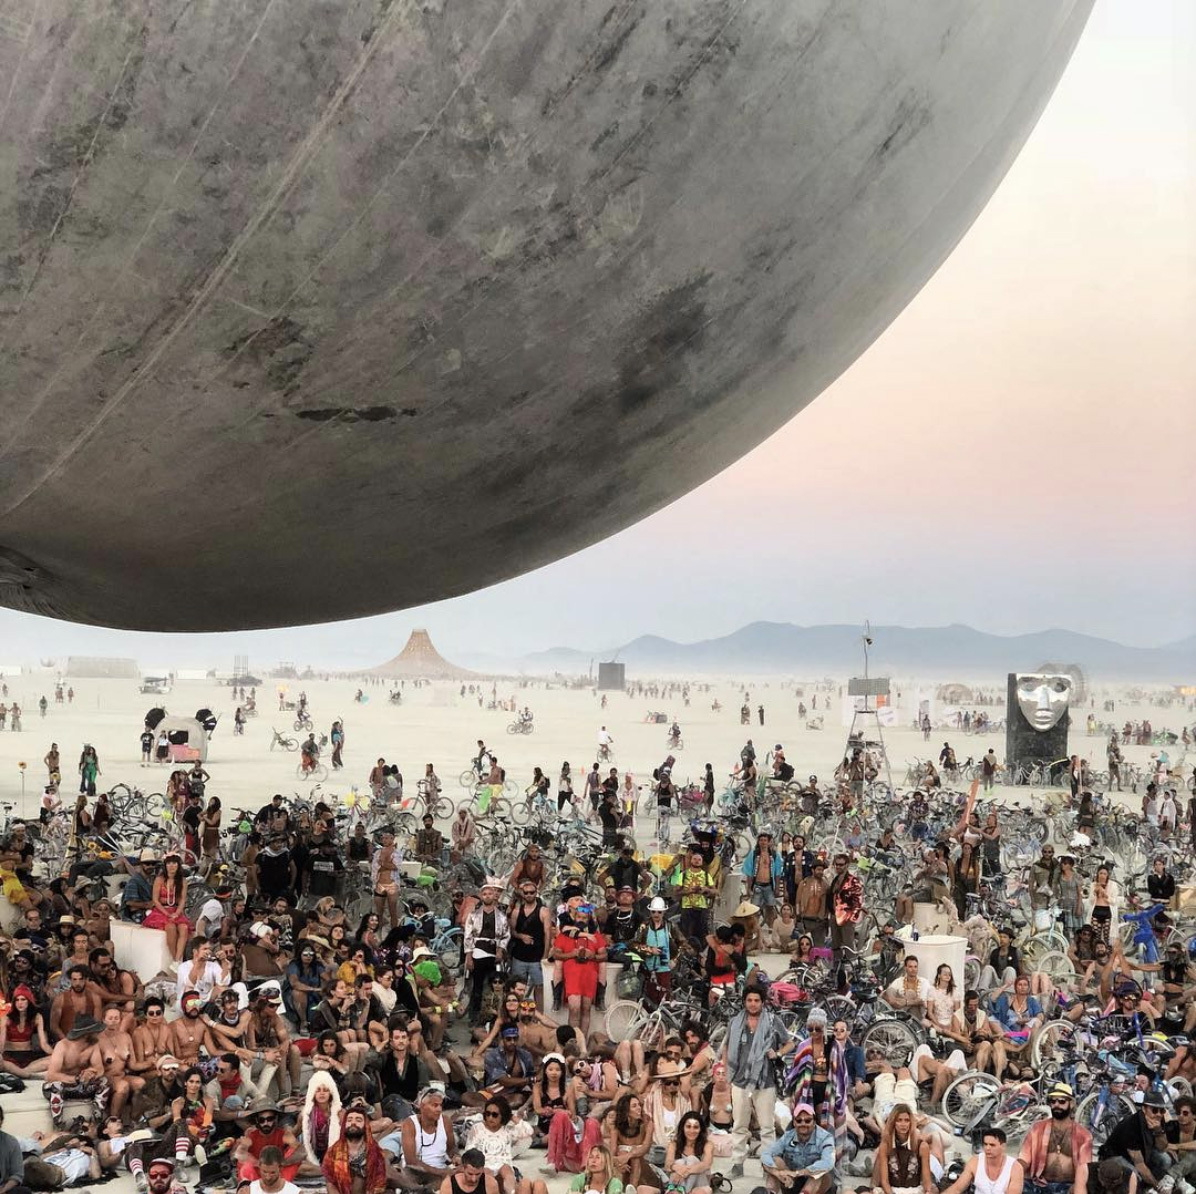 Orb, a giant sphere by Bjarke Ingels in Burning Man 2018. Courtesy of Bjarke Ingels